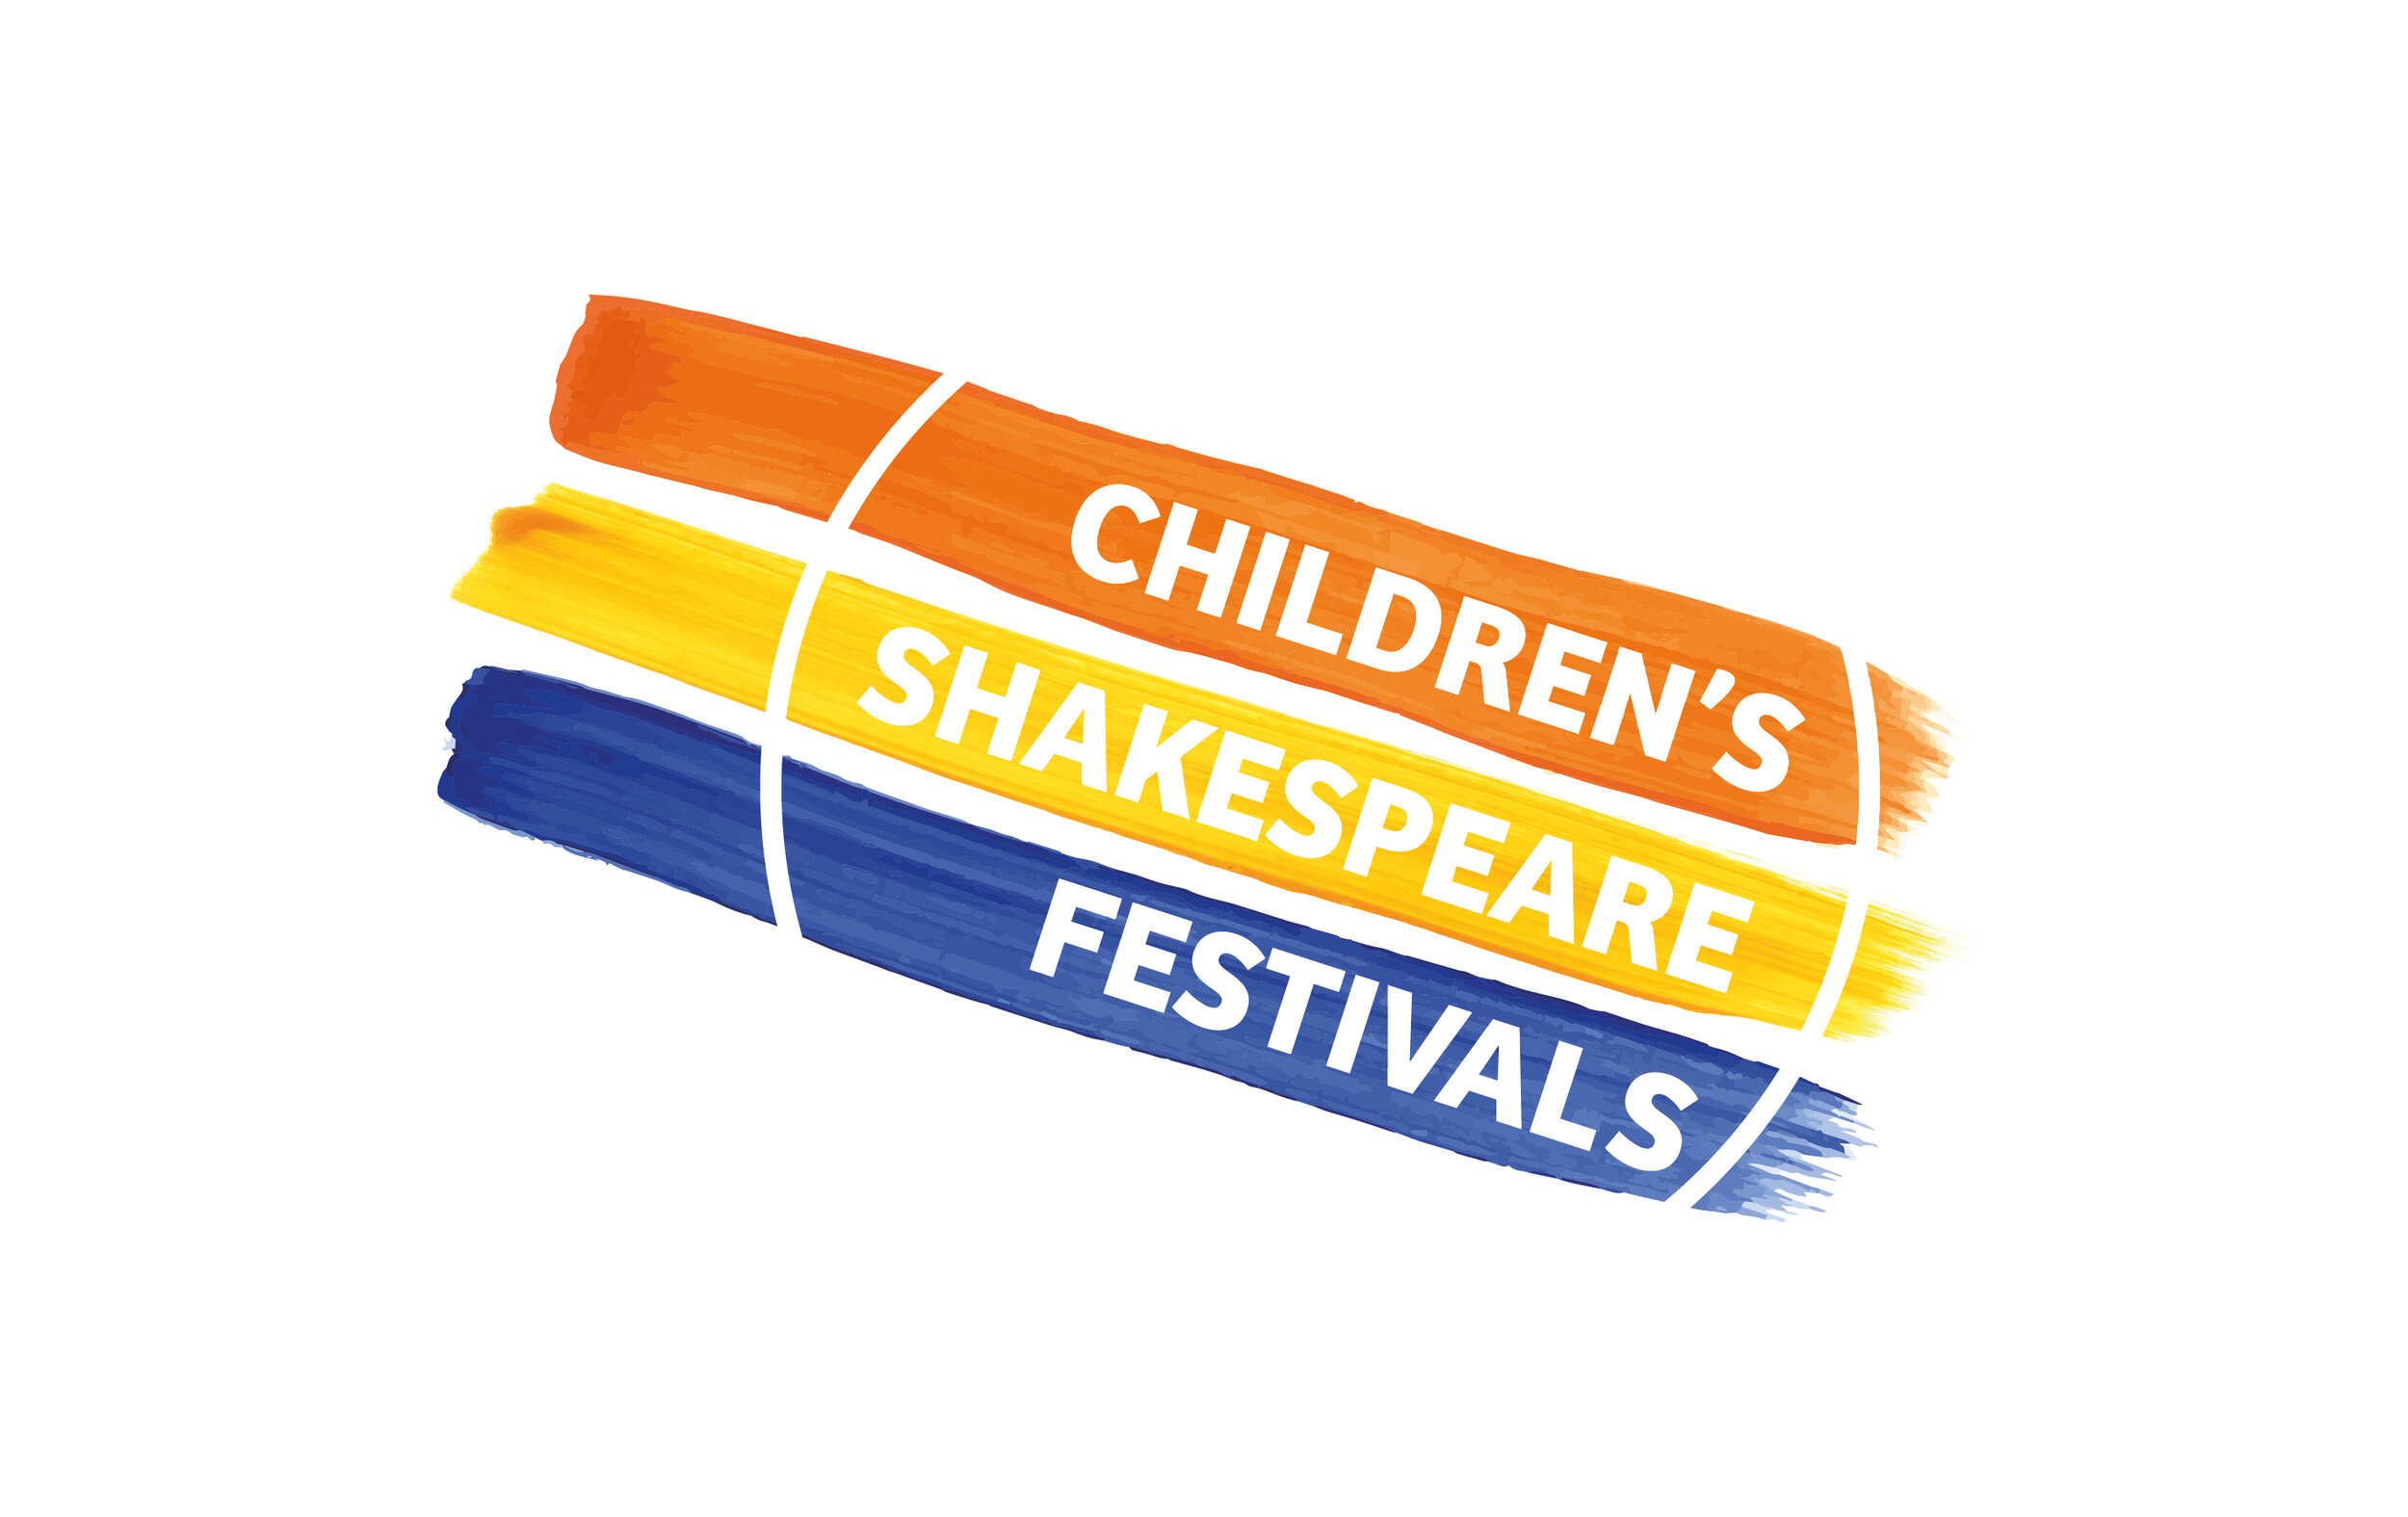 Ident for North West Drama's Children's Shakespeare Festivals